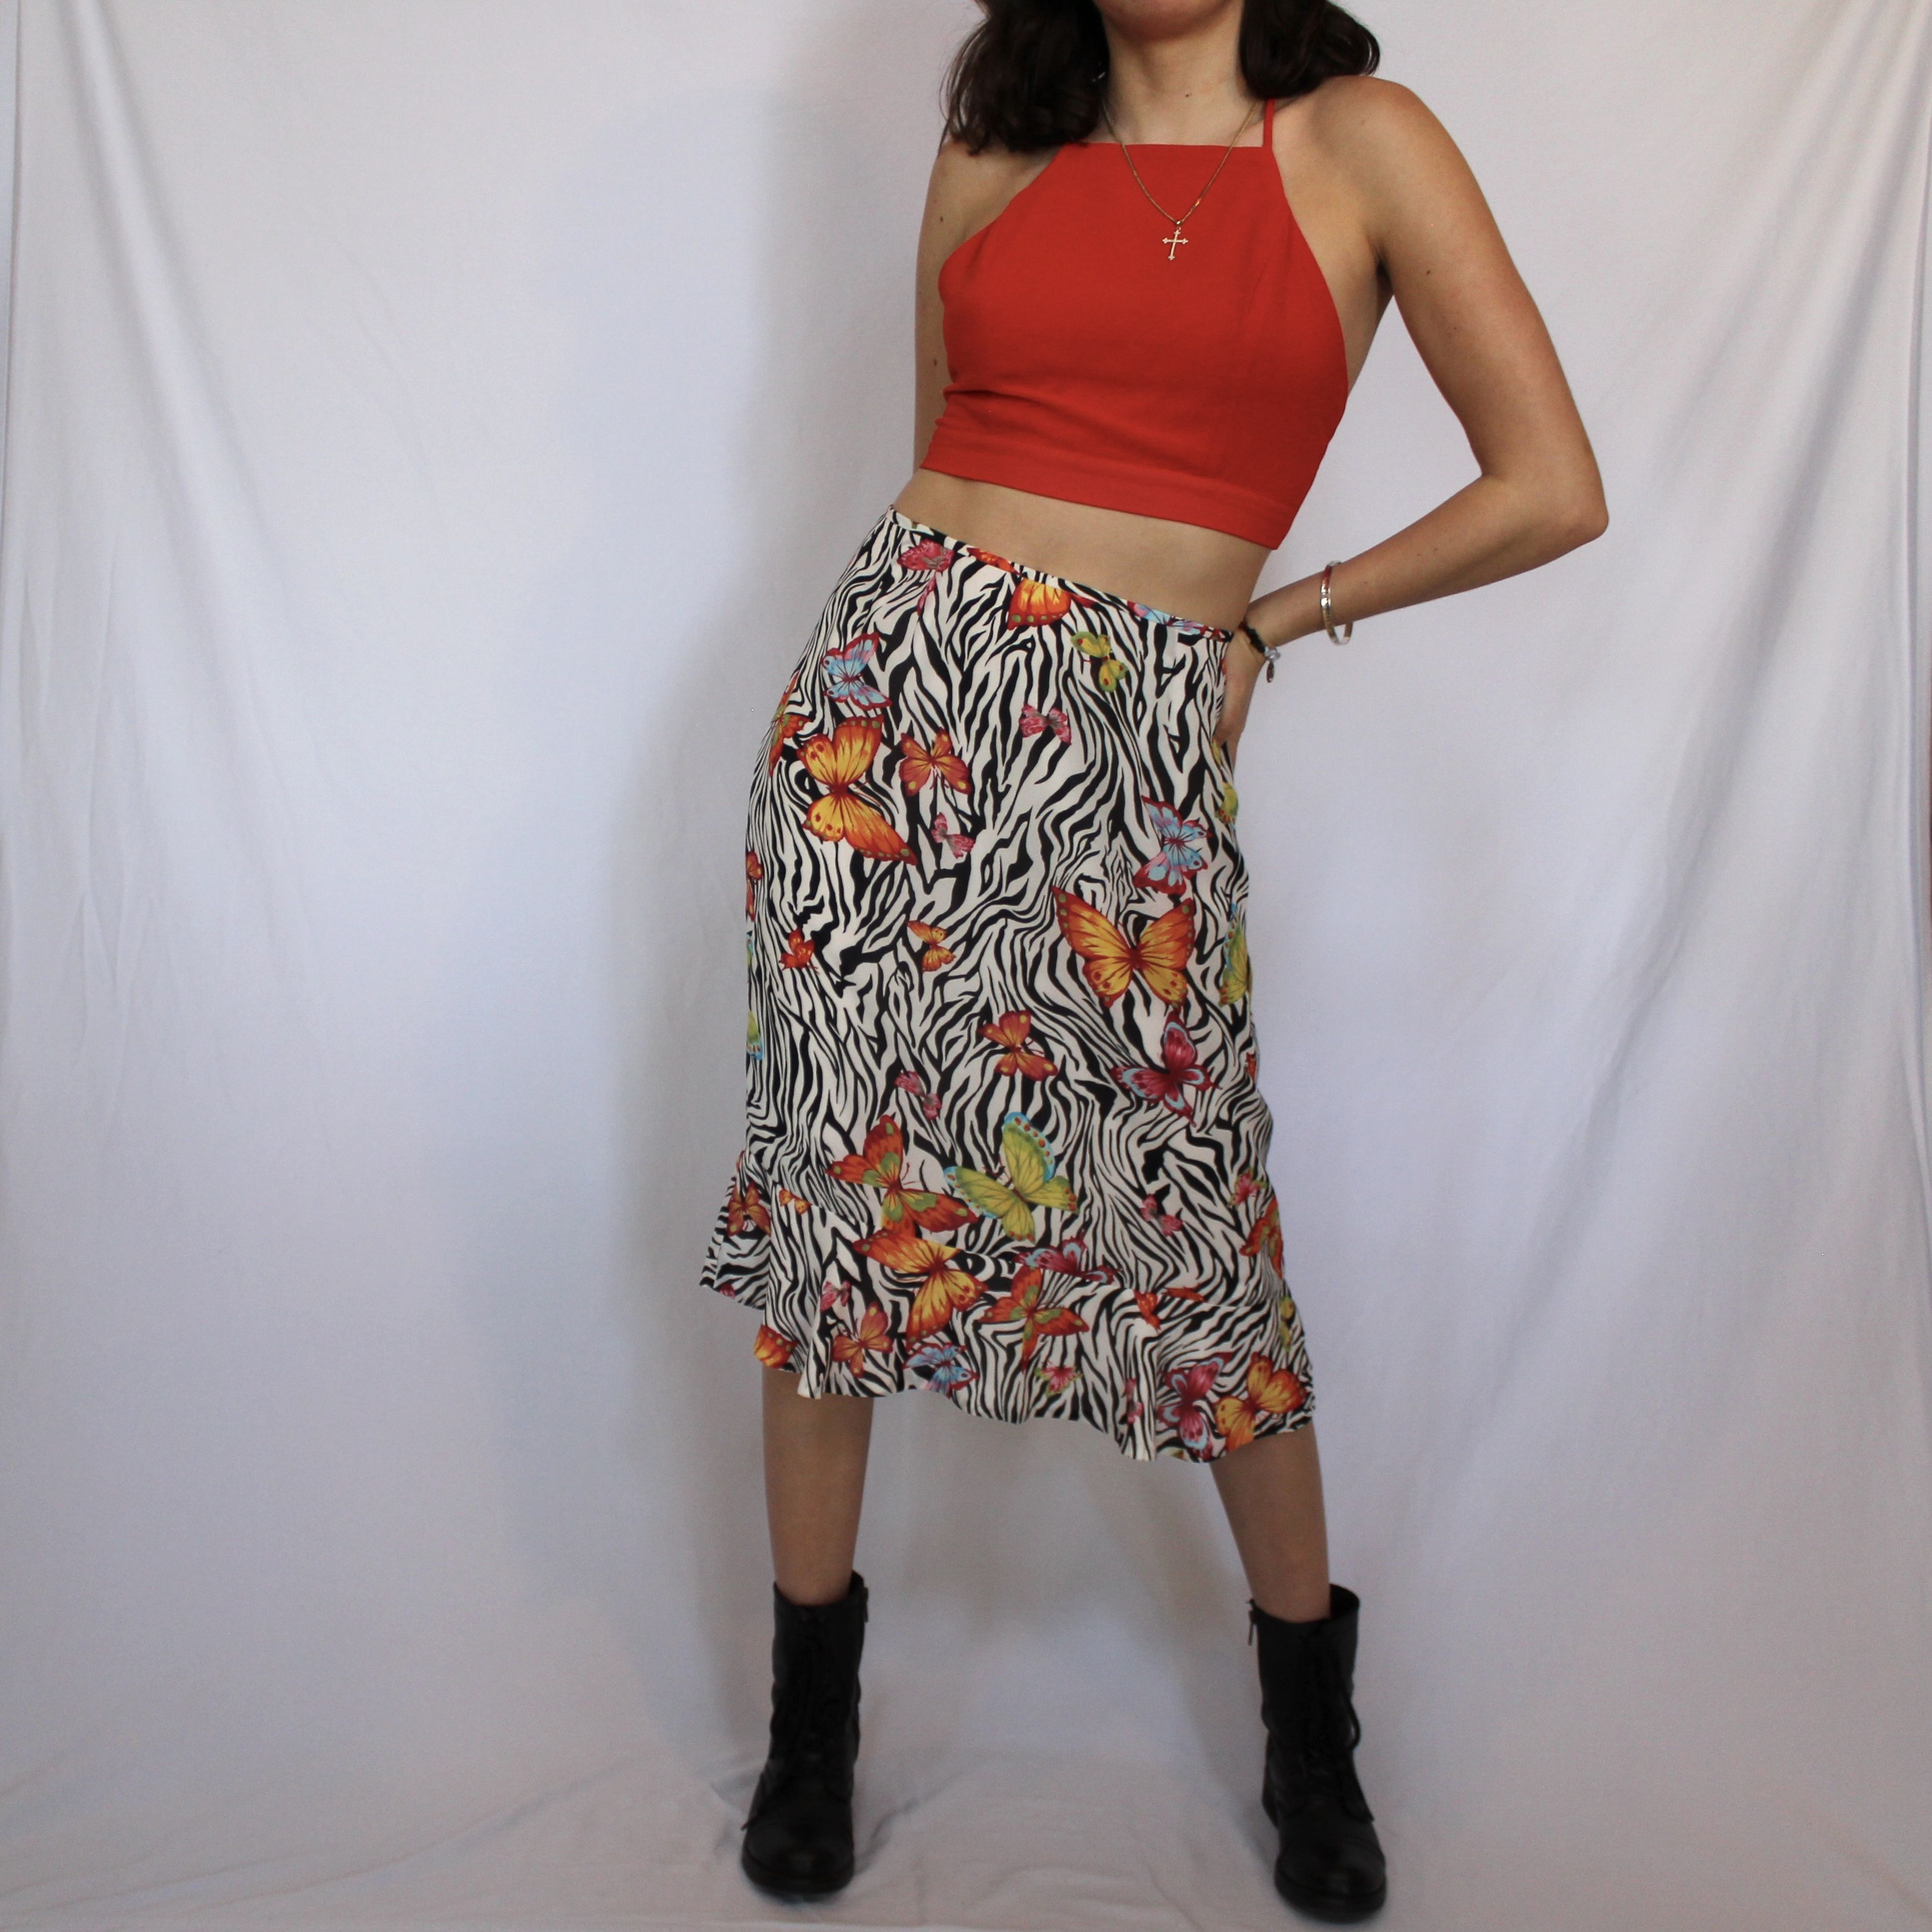 Y2k Skirt Of Your Dreams In 2020 Model Outfits Butterfly Skirt Depop